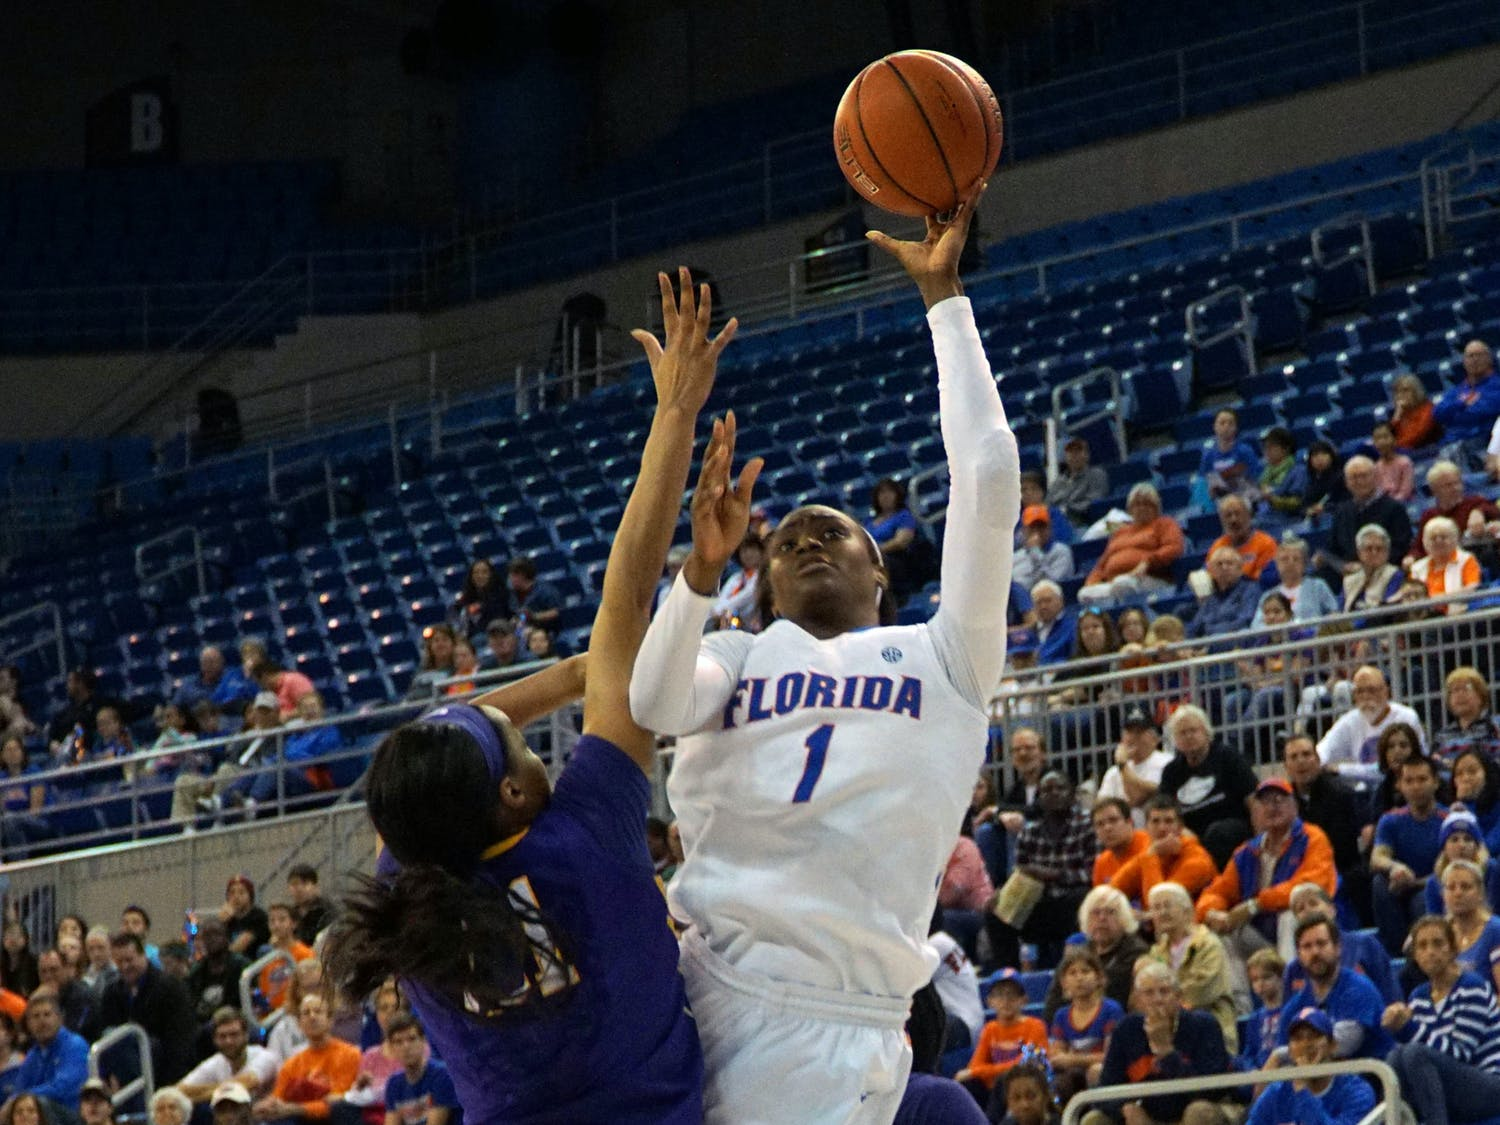 UF forward Ronni Williams goes for a layup during Florida's 53-45 win against LSU on Jan. 17, 2016, in the O'Connell Center.